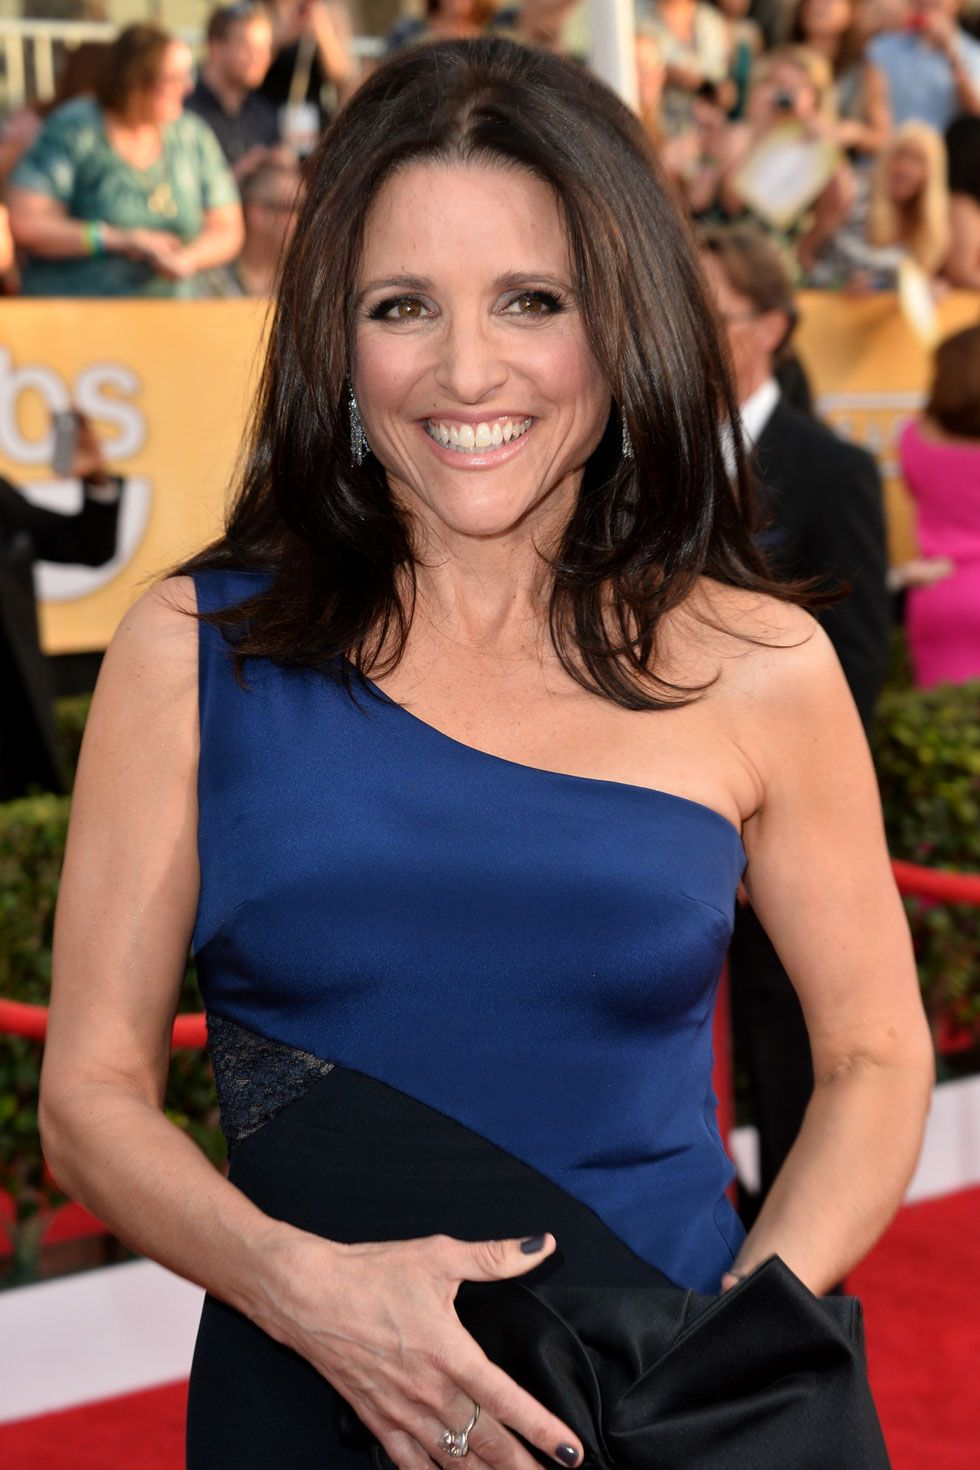 "<strong>Badass alert:</strong> She does bad really good—from the Elaine dance (<em>Seinfeld</em>) to the White House (<em>Veep</em>).   <strong>Find her: </strong><a target=""_blank"" href=""https://twitter.com/officialjld"">@OfficialJLD</a>."